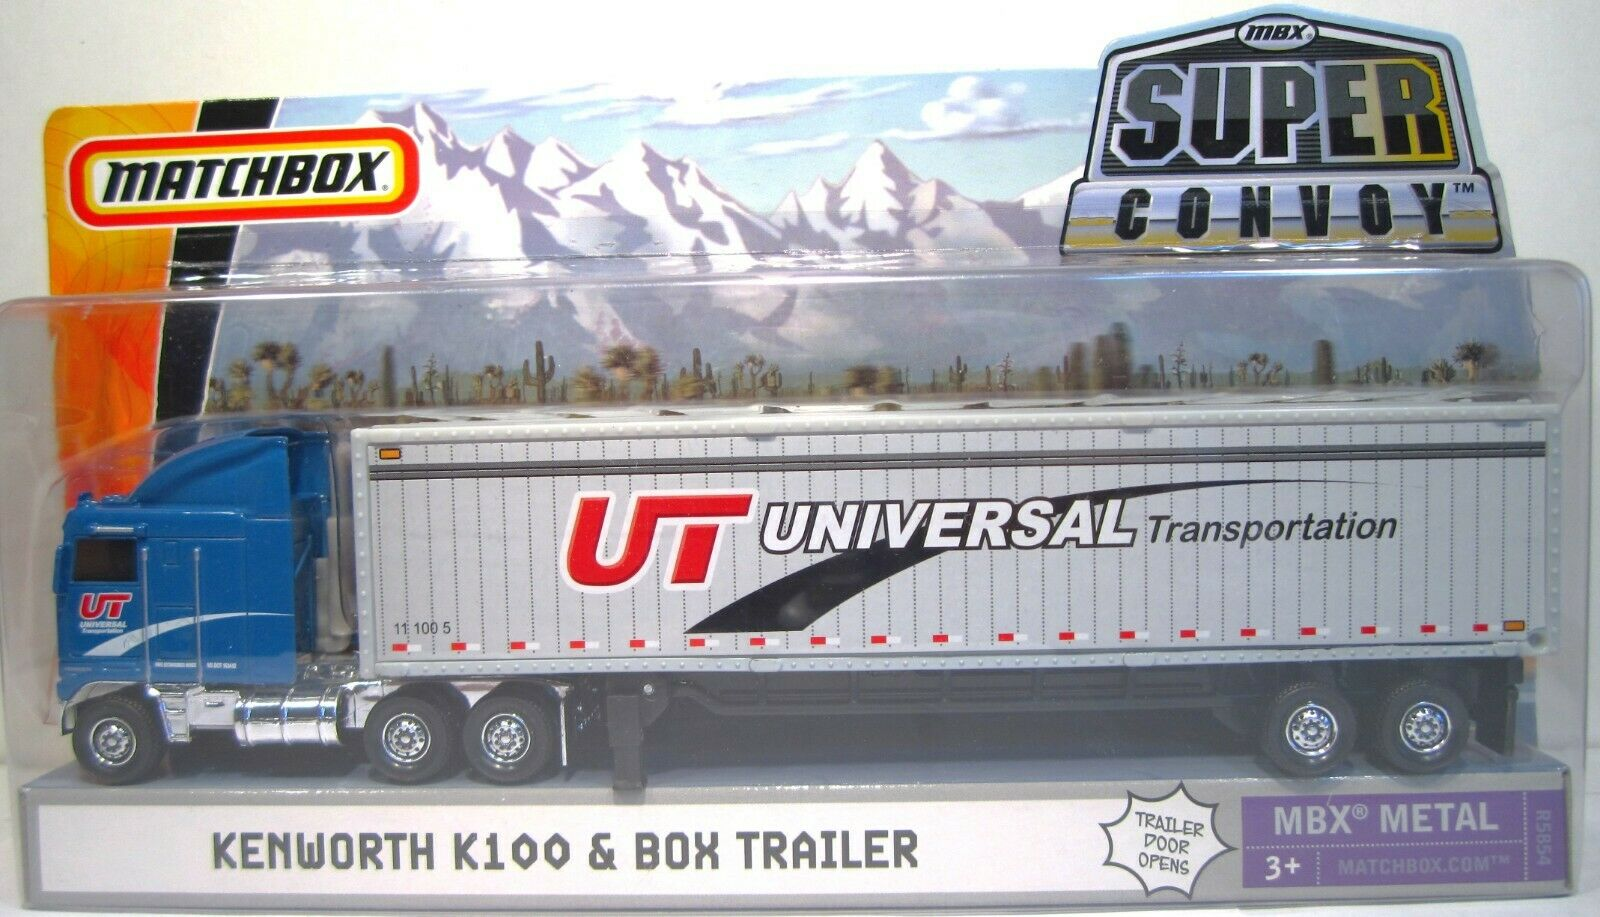 Matchbox Super Convoy Kenworth K100 & Box Trailer MBX Metal,  R5854